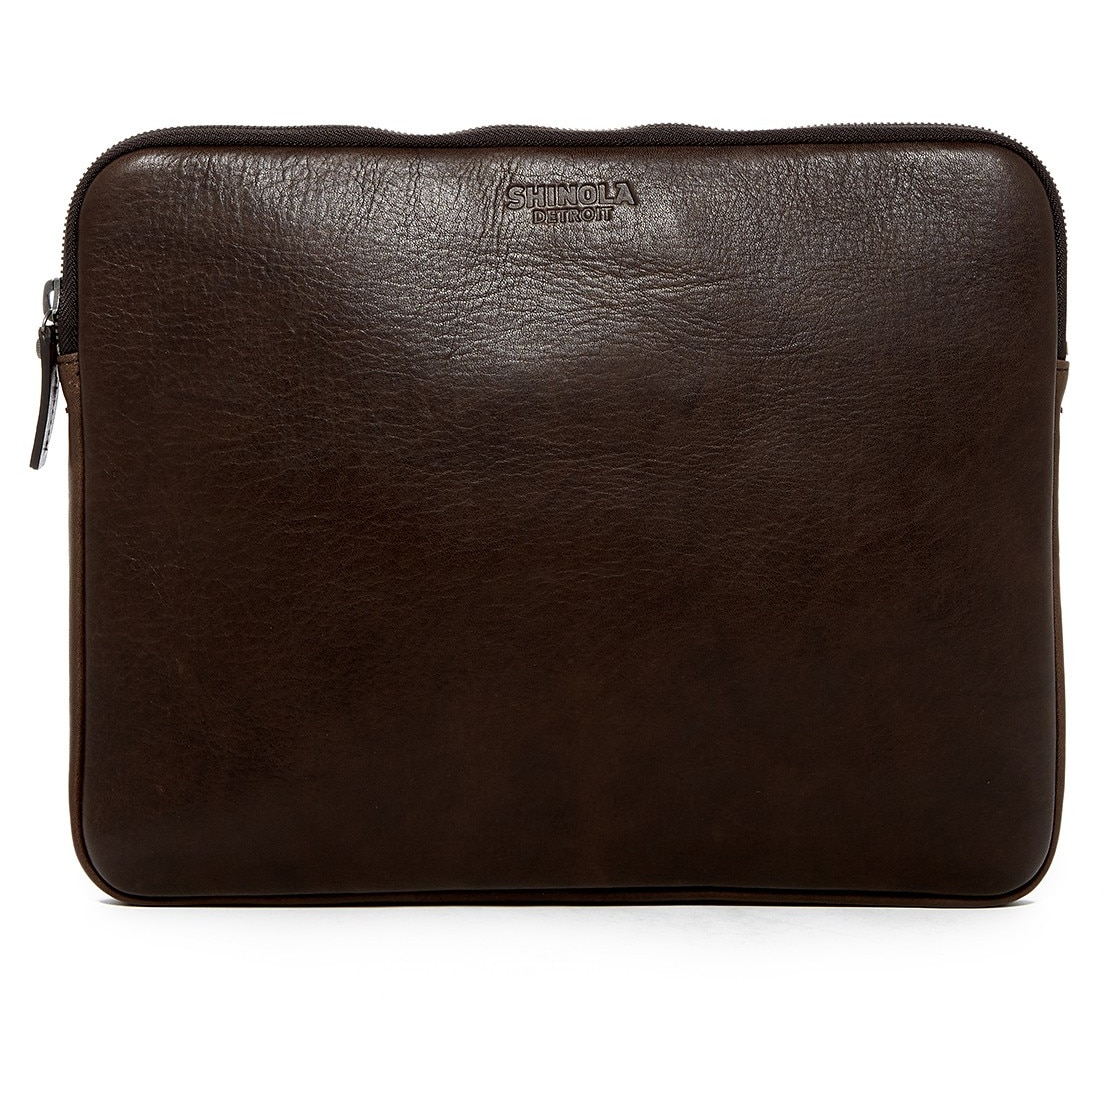 """Shinola 13"""" Portfolio Full Grain Leather Laptop   Tablet Zippered Pouch Choose Your Color-Deep Brown   13"""" by Shinola"""